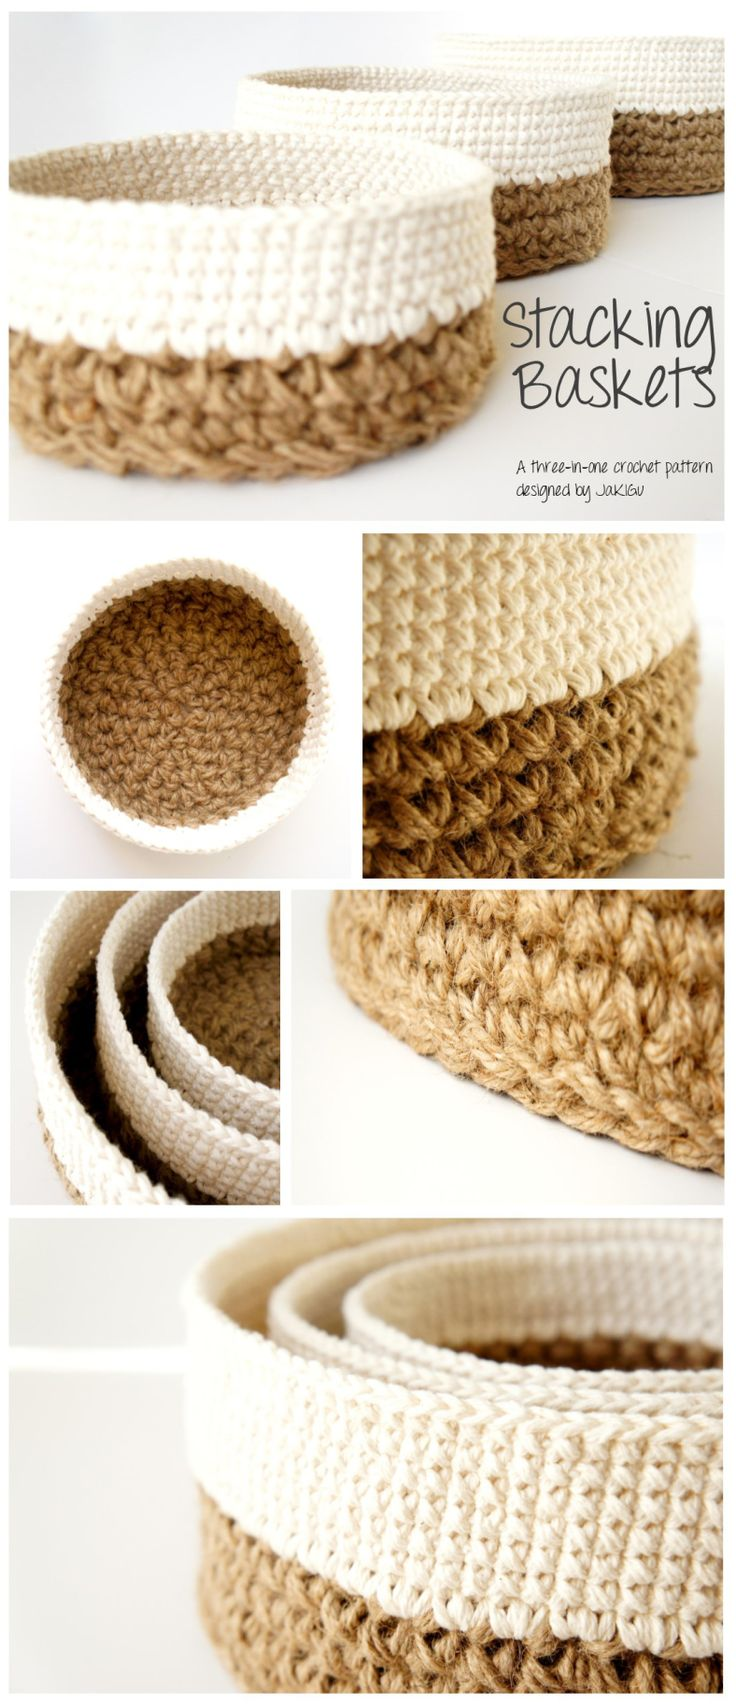 Stacking Baskets Crochet Pattern by JaKiGu - Three nesting baskets worked in…